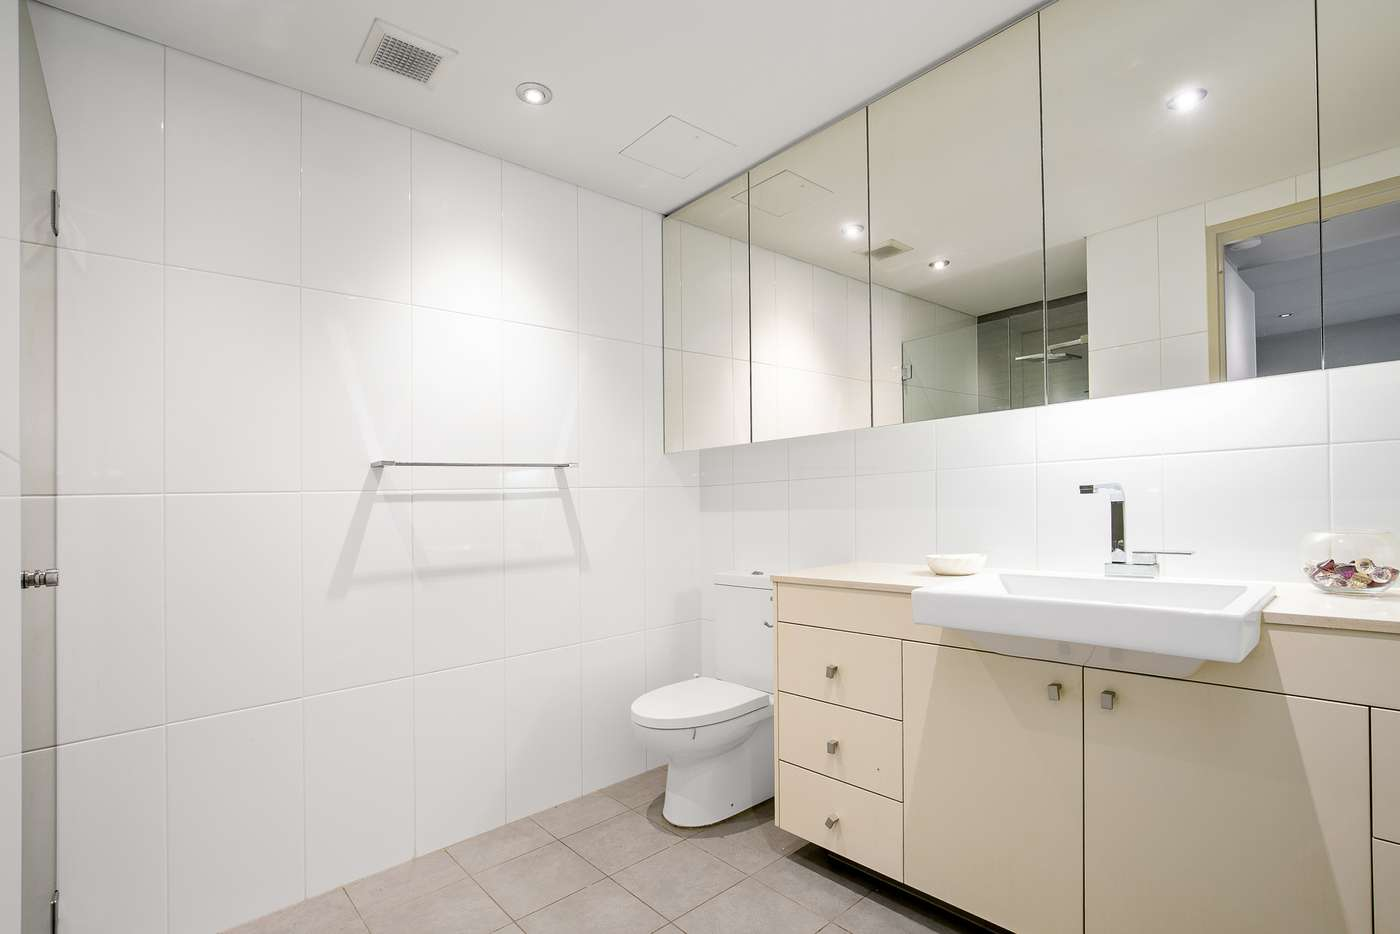 Fifth view of Homely apartment listing, 14/1-7 Newhaven Place, St Ives NSW 2075